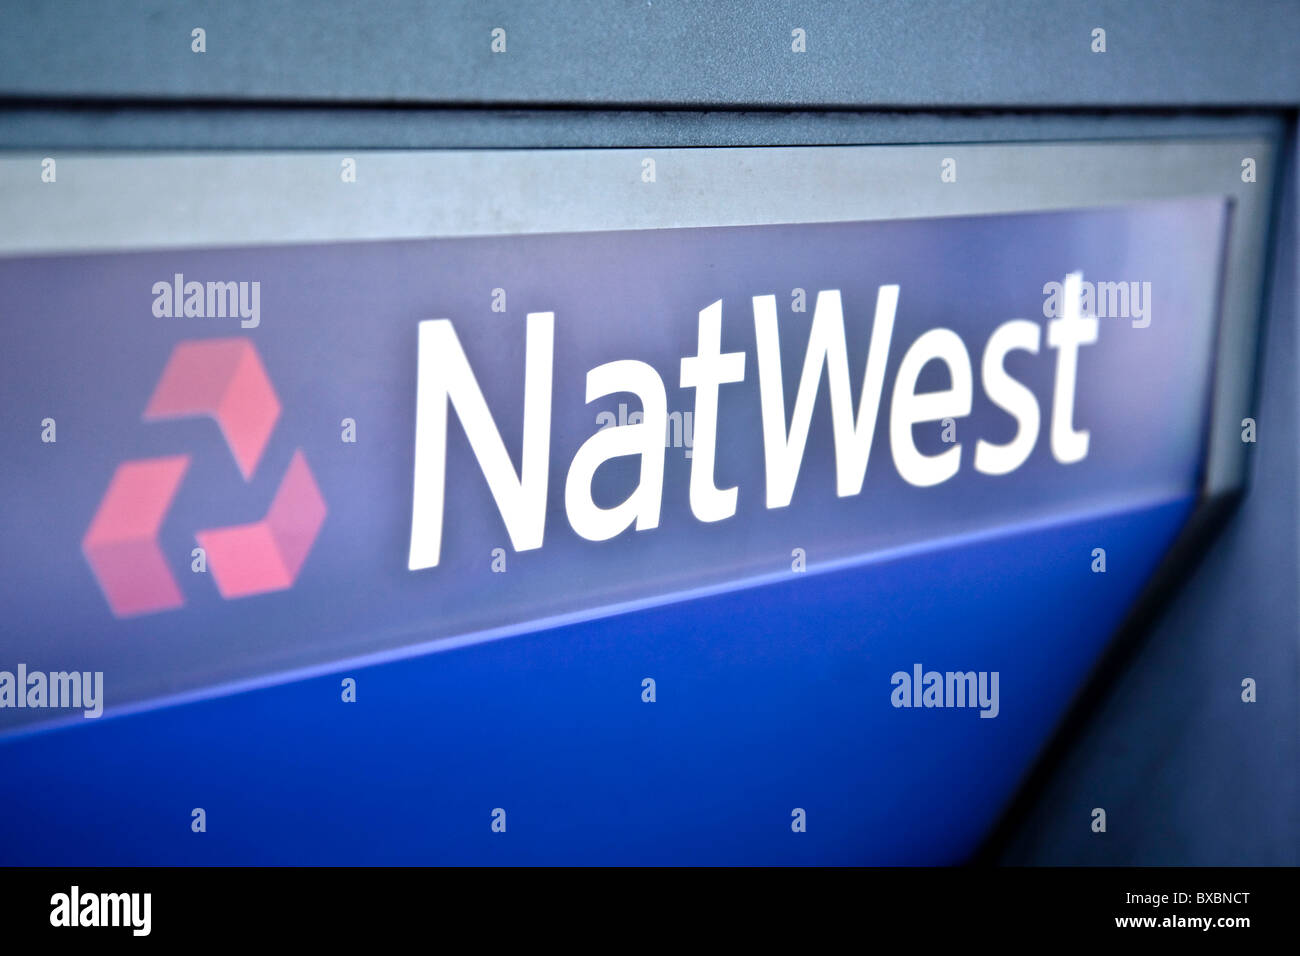 Natwest Business Bank Stock Photos & Natwest Business Bank Stock ...